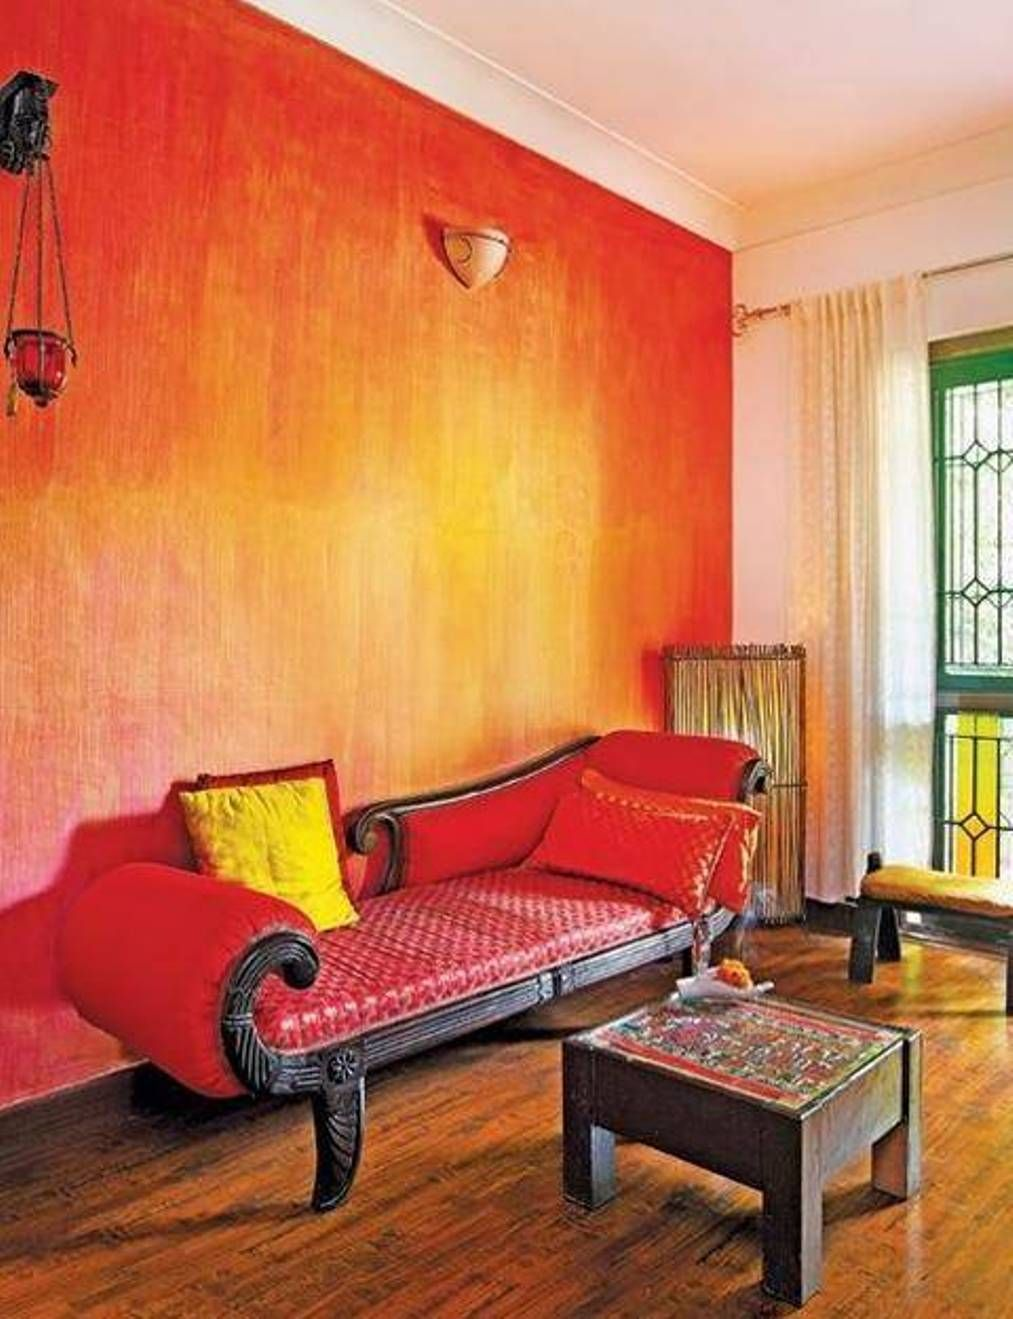 Home design and decor attractive paint walls ideas Orange and red living room design